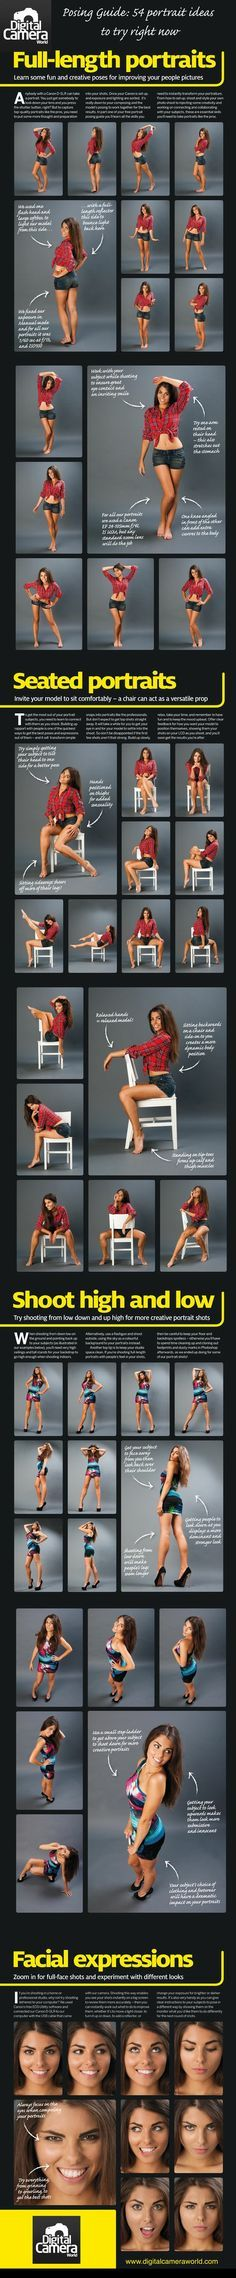 Posing Guide: 54 portrait ideas to try right now. (Digital Camera World) -length portaits Learn some fun and creative poses for impruving your poeple pictures. - Seated portraits Invite your model to sit comfortably - a chair can act as a verstile prop - Shoot high and low Try shooting from low down and up high for more creative portrait shots - Gacial expressions zoom in for full-face shots and experiment with different looks